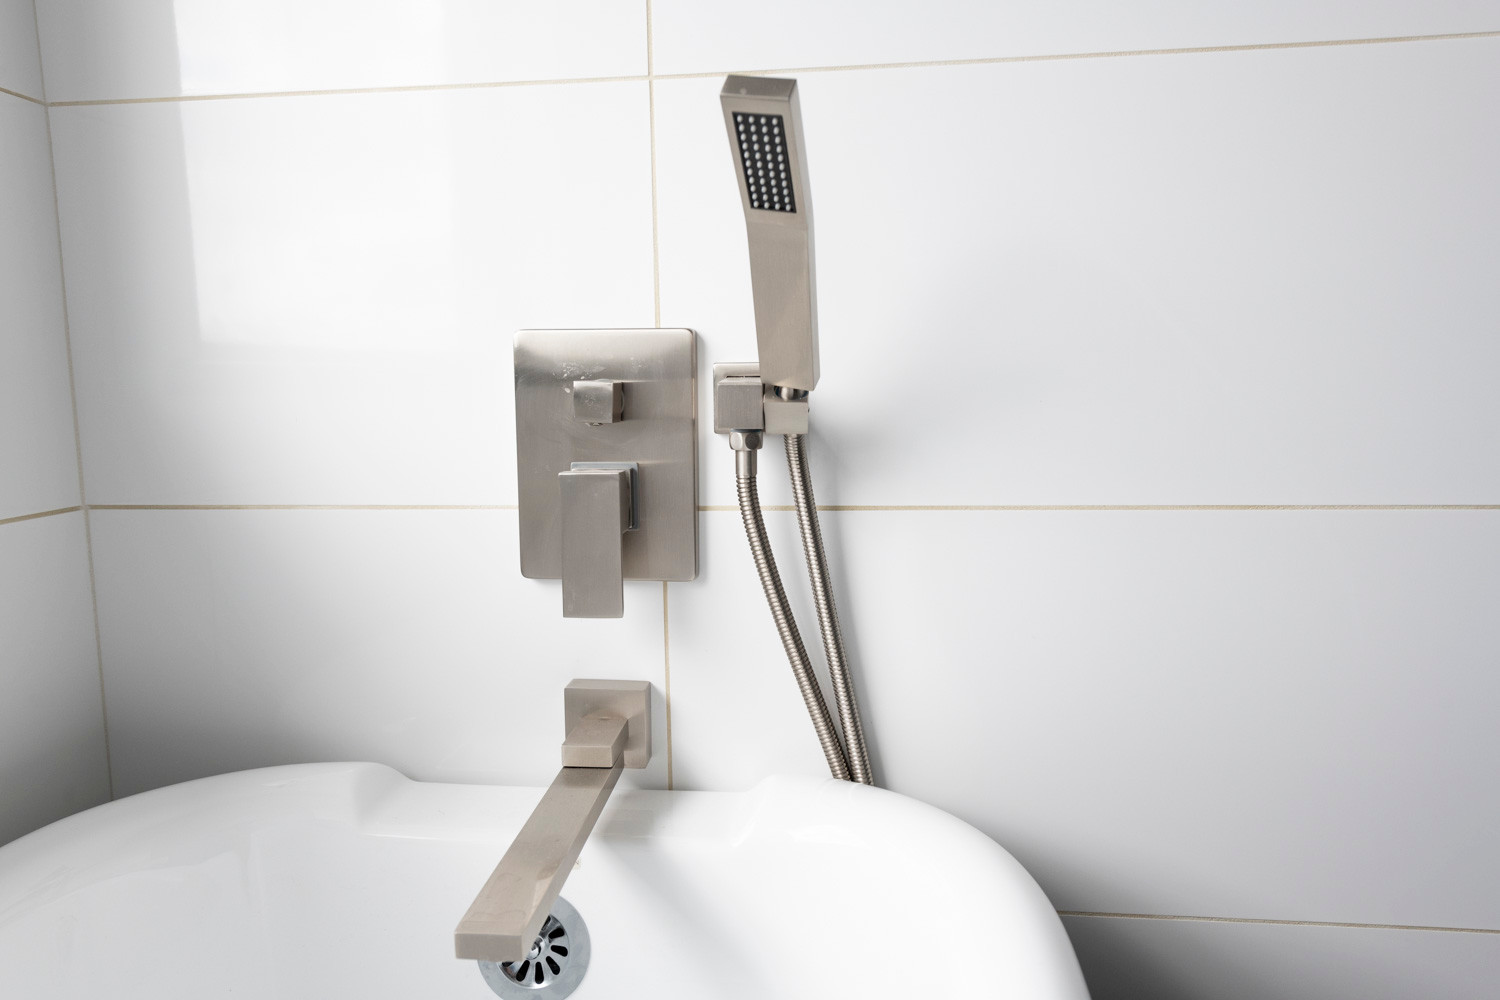 Bathroom Tub Fixtures